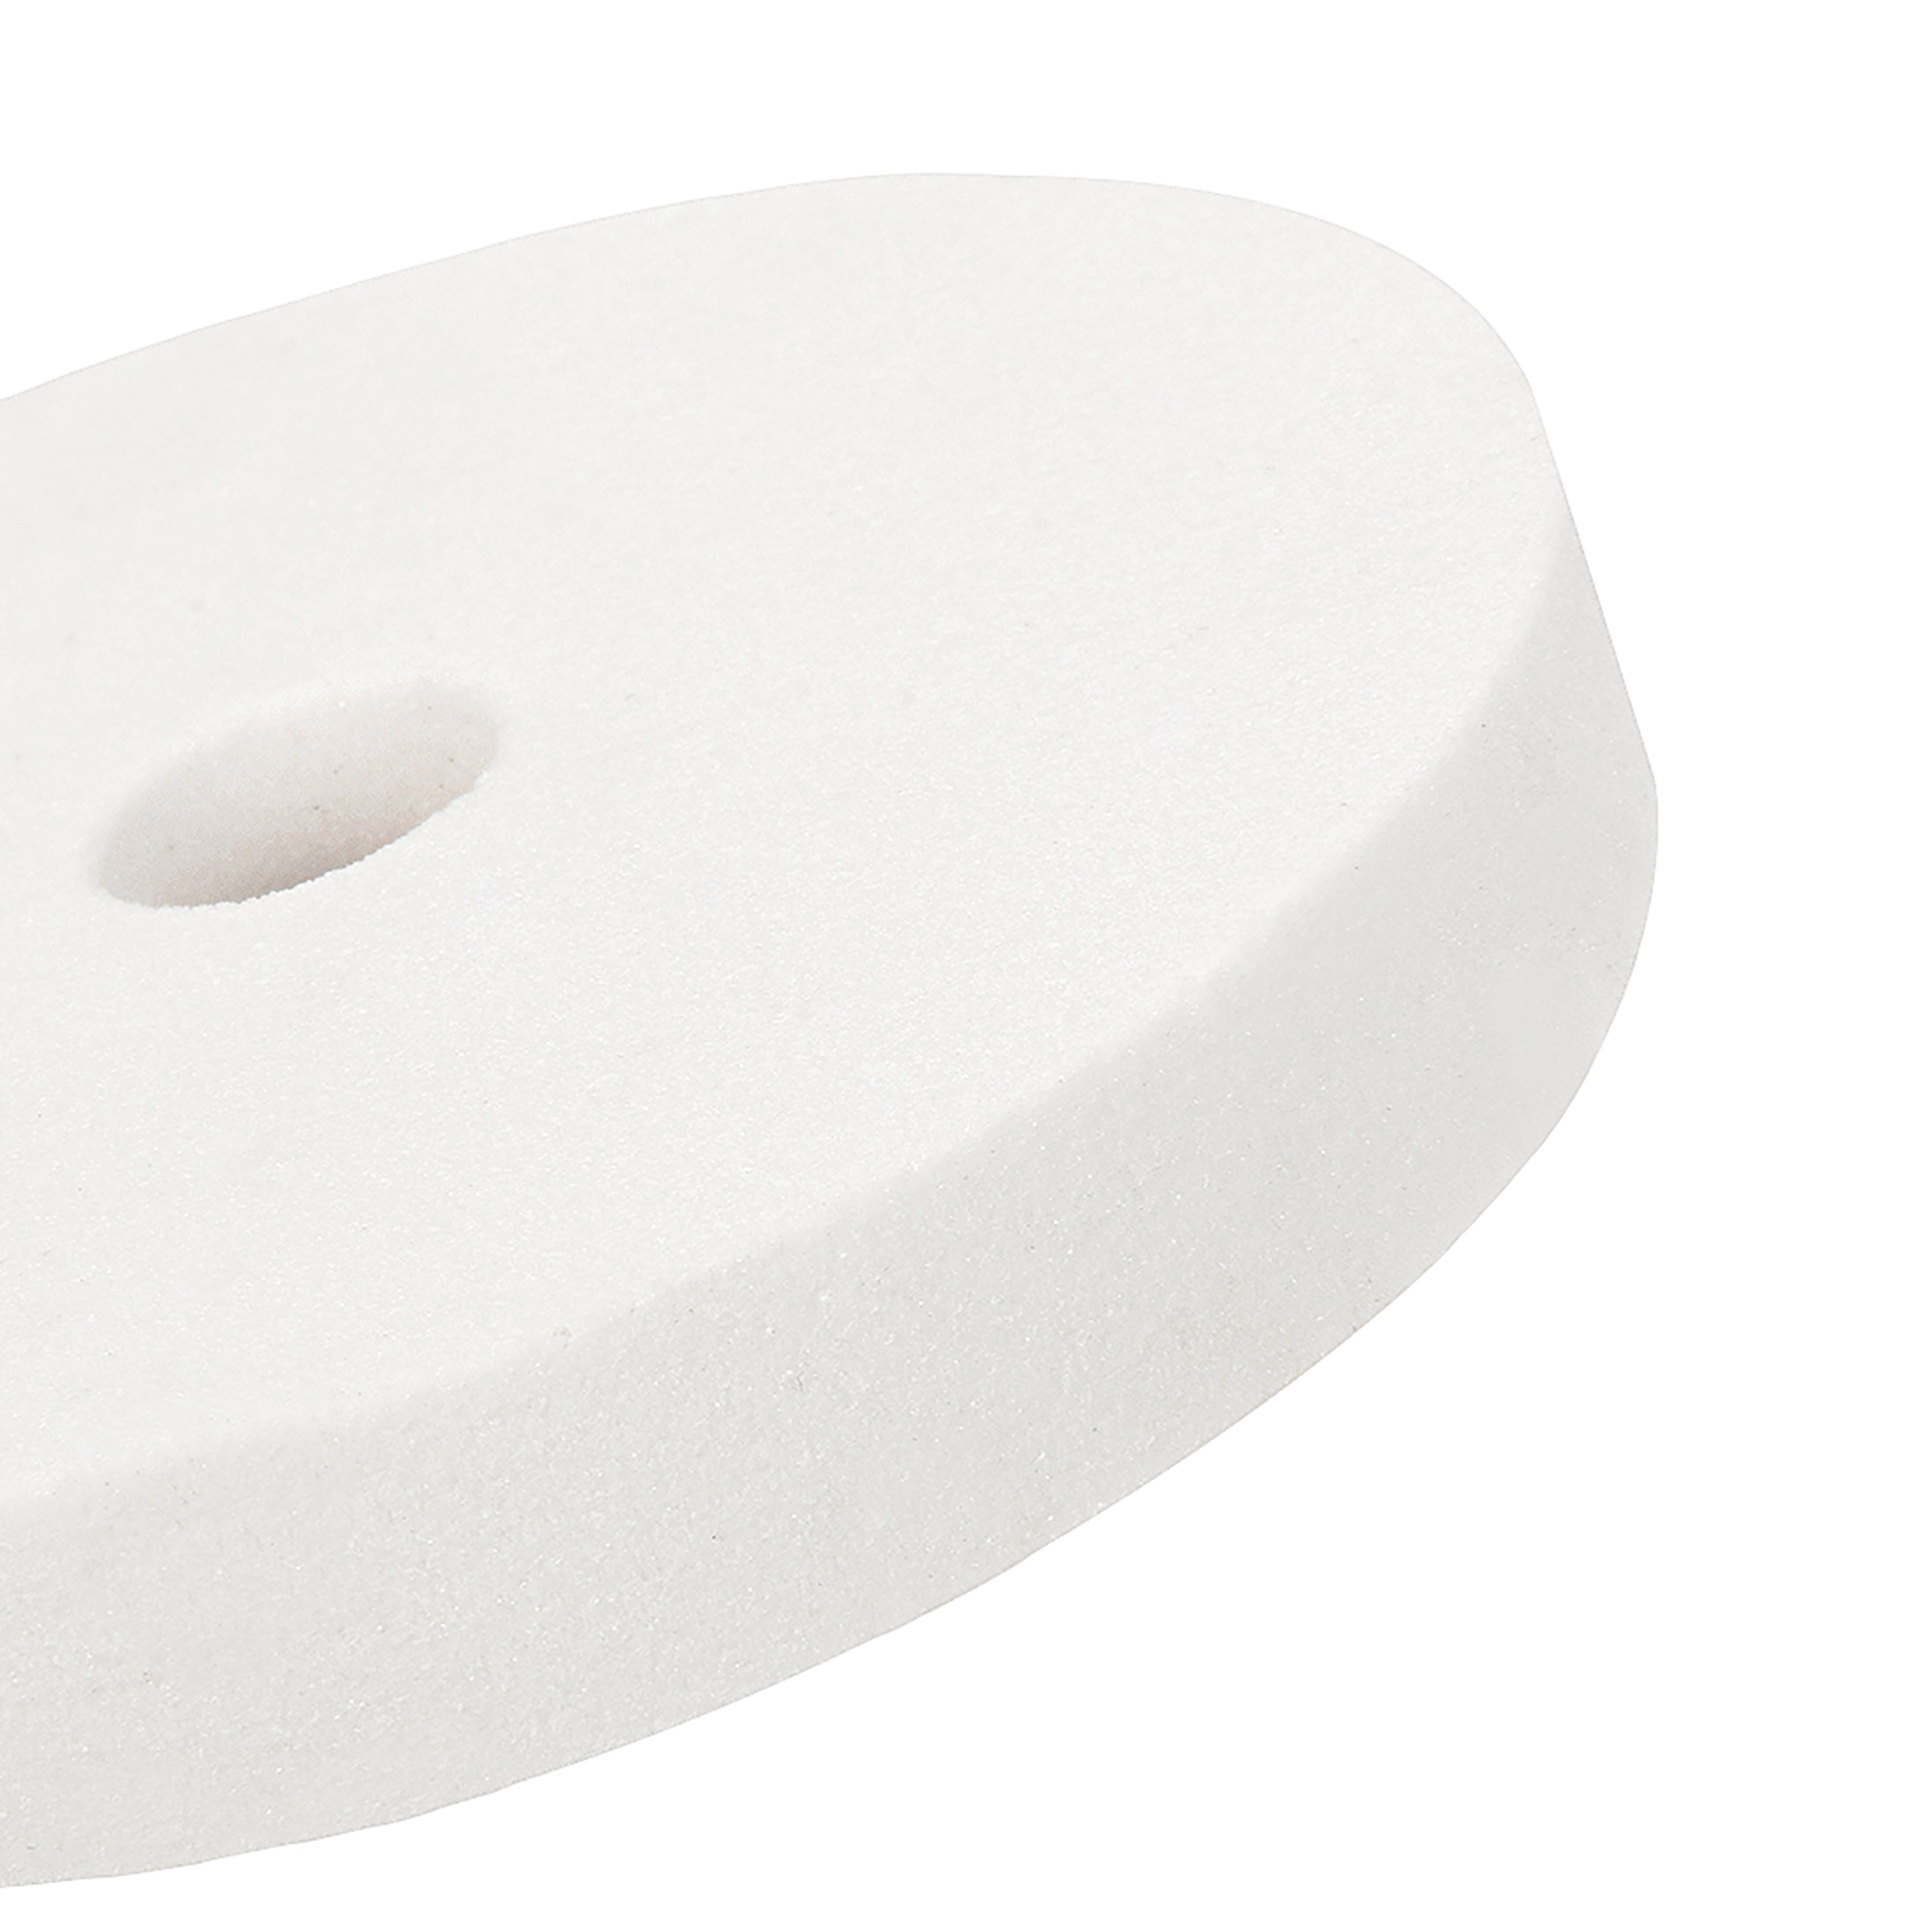 5-Inch Bench Grinding Wheels White Aluminum Oxide WA 60 Grits Surface Grinding Ceramic Tools - image 1 de 3